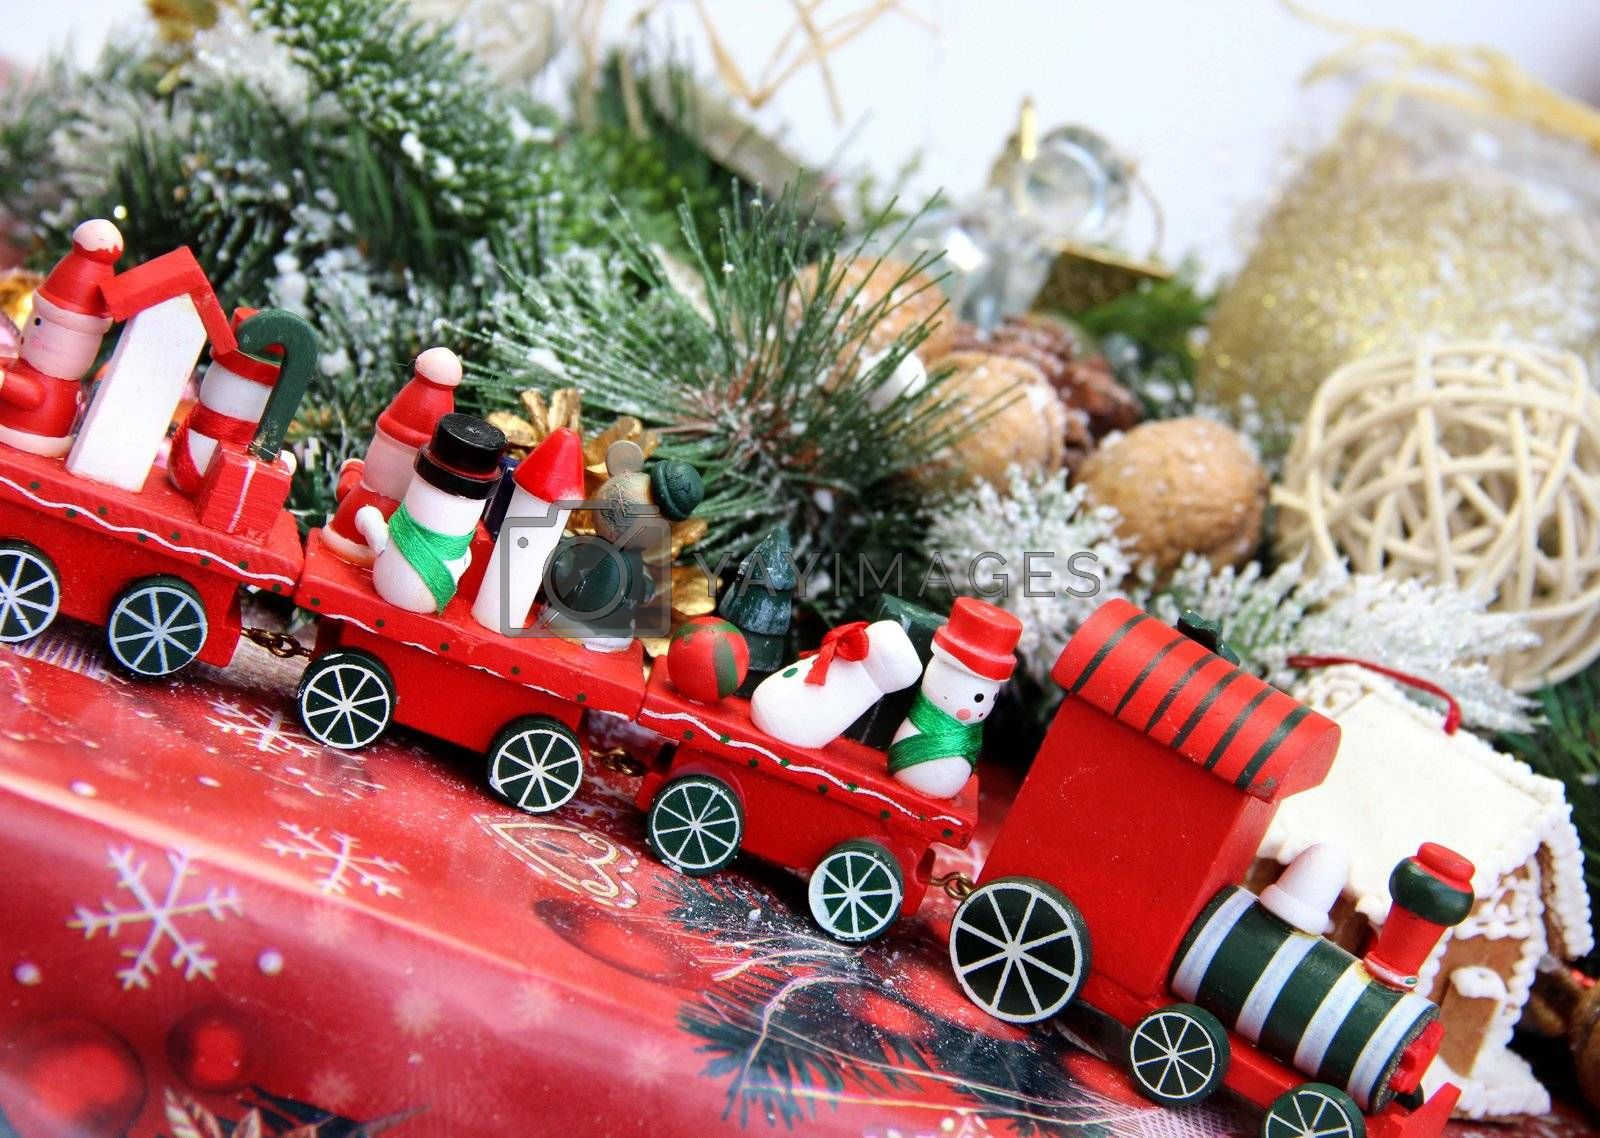 Big mix of Christmas decorations with toy red train